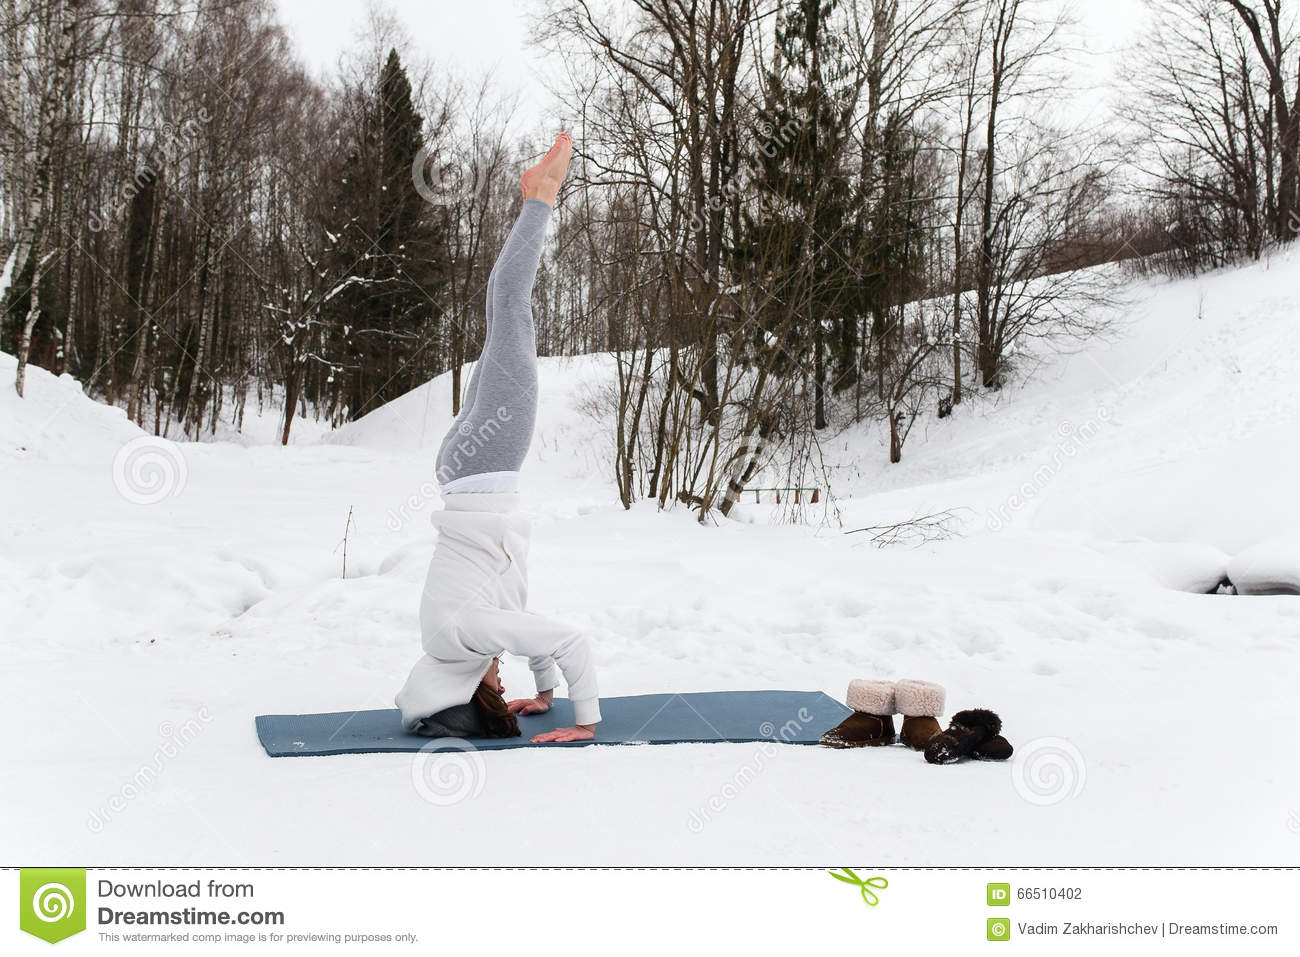 https://thumbs.dreamstime.com/z/winter-yoga-session-beautiful-place-young-athletic-woman-doing-woods-girl-engaged-fitness-park-66510402.jpg